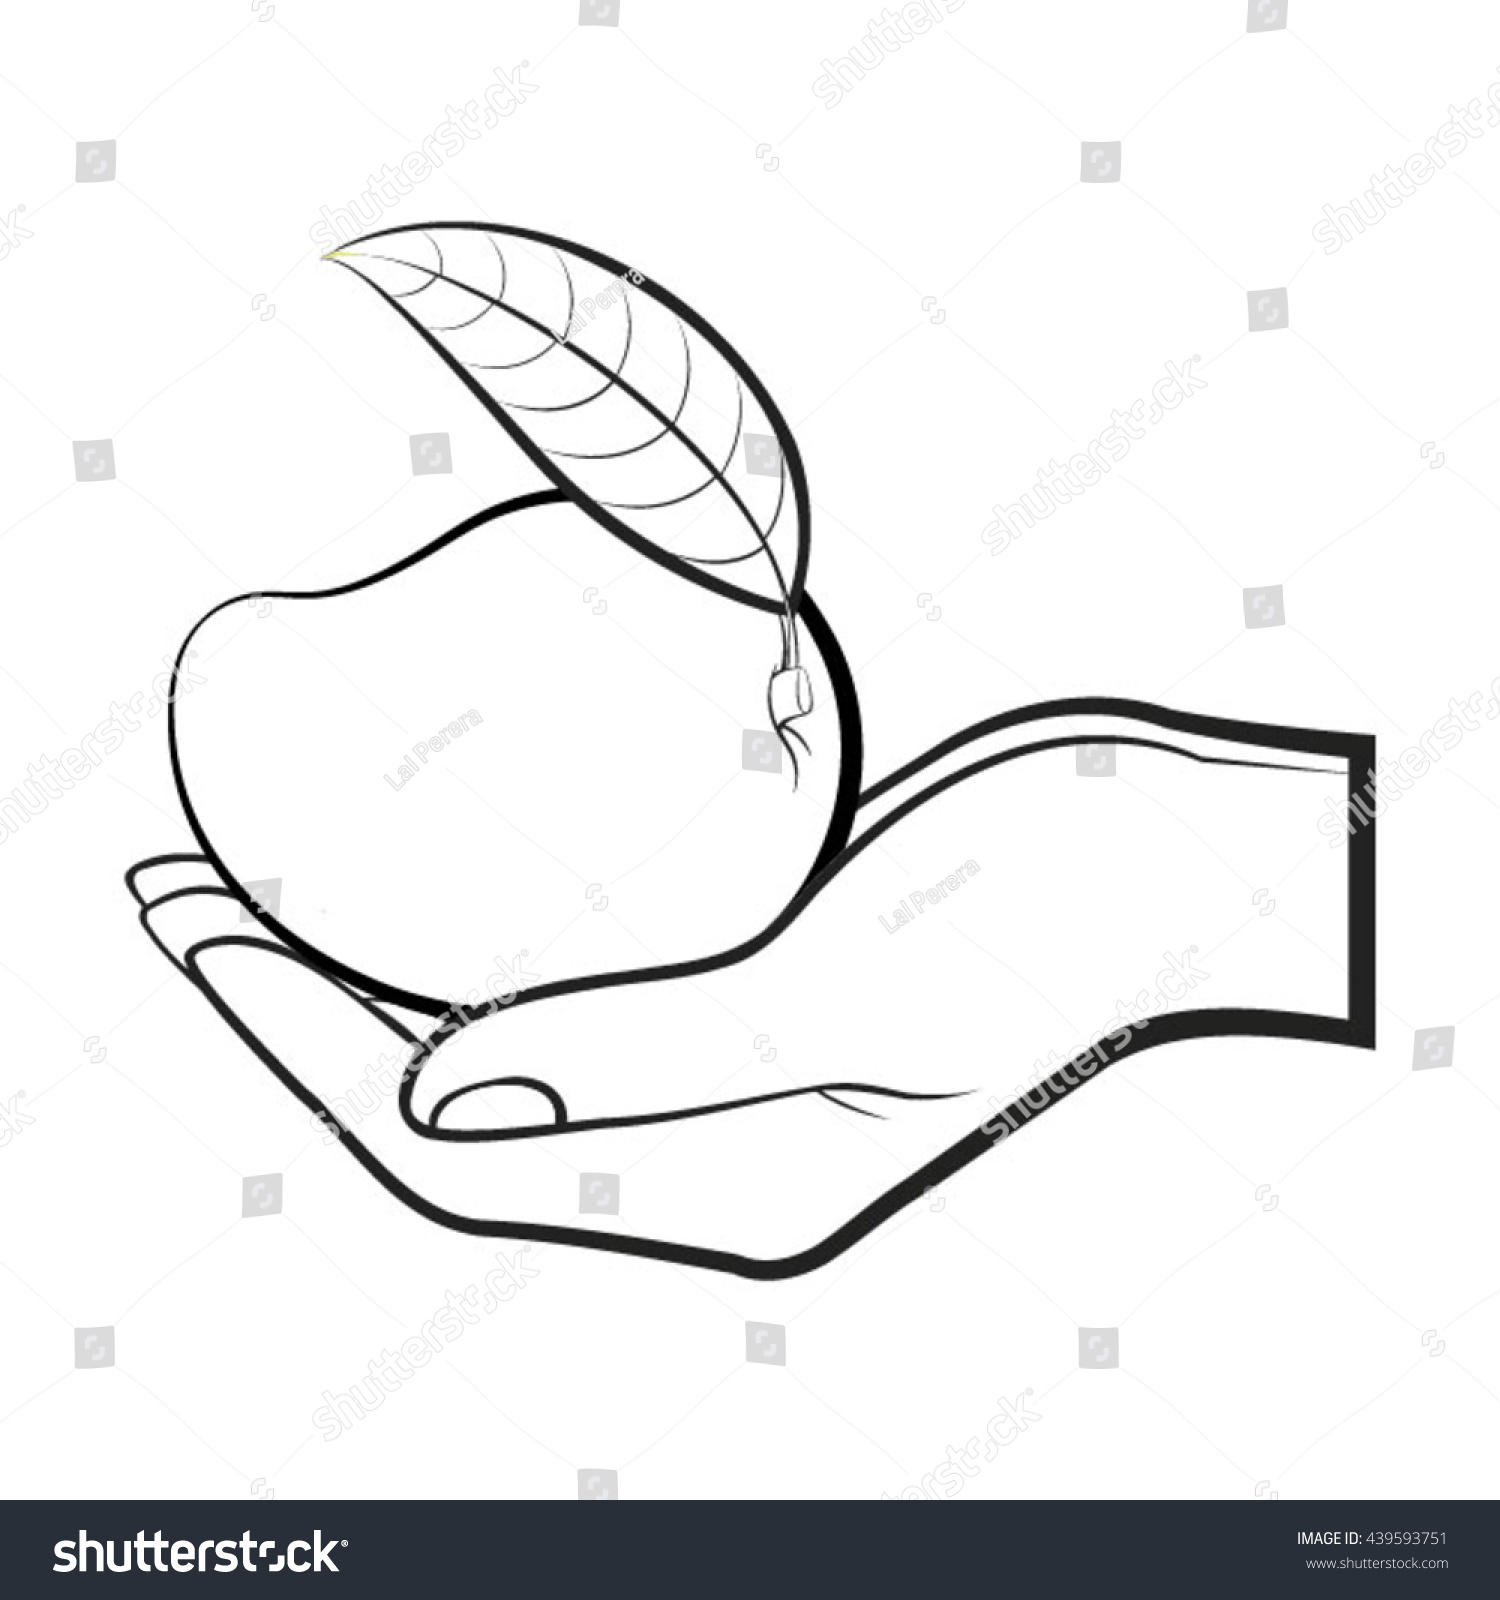 hand holding mango in outline vector drawing